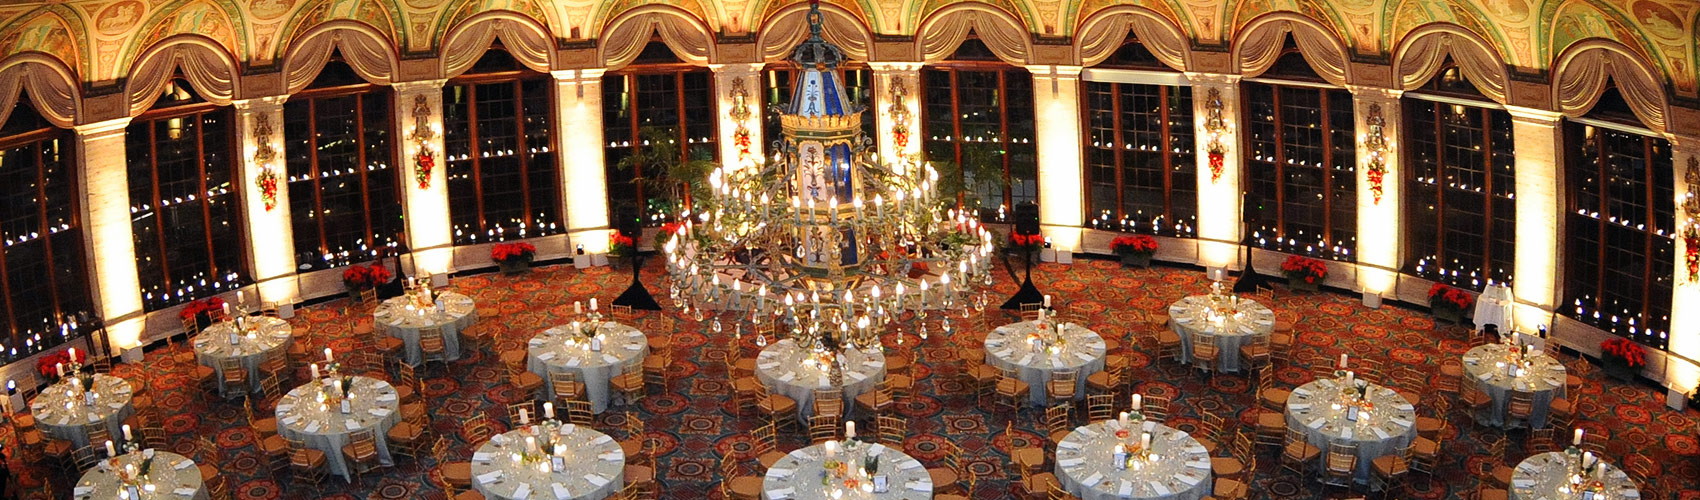 The Circle Ballroom decorated for a special event at The Breakers